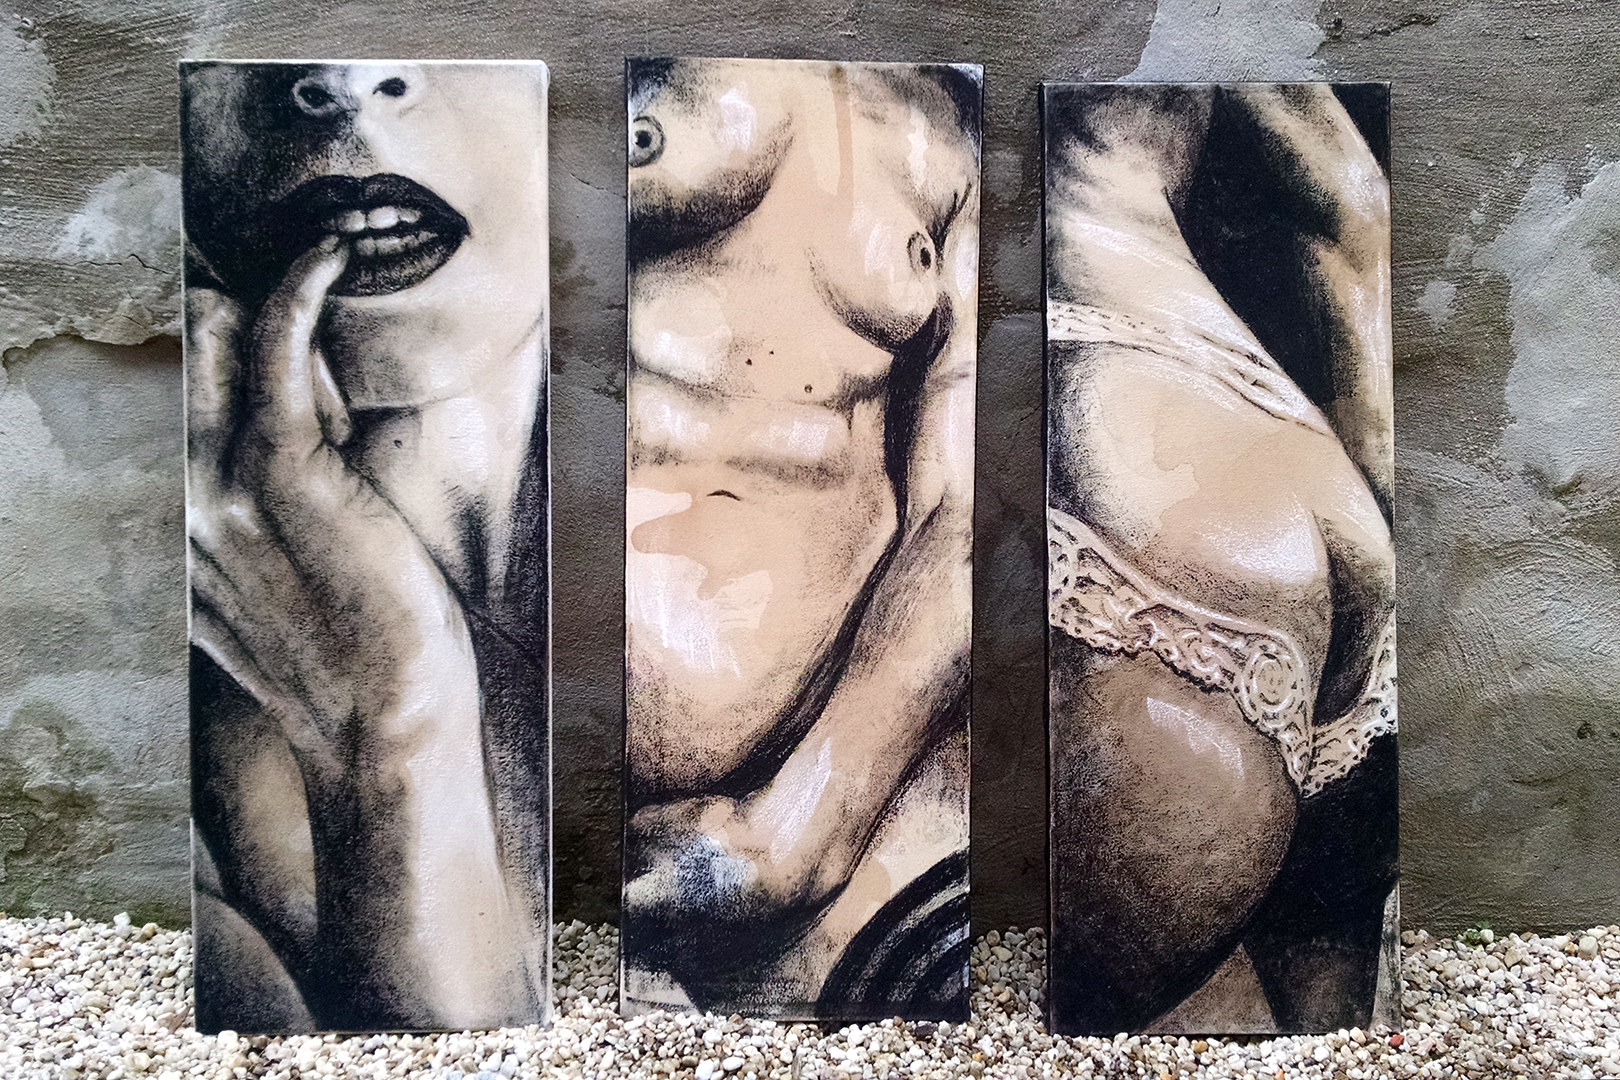 Sexting IMGS Series  First three finished charcoal illustrations. ©2015 The Femme Project